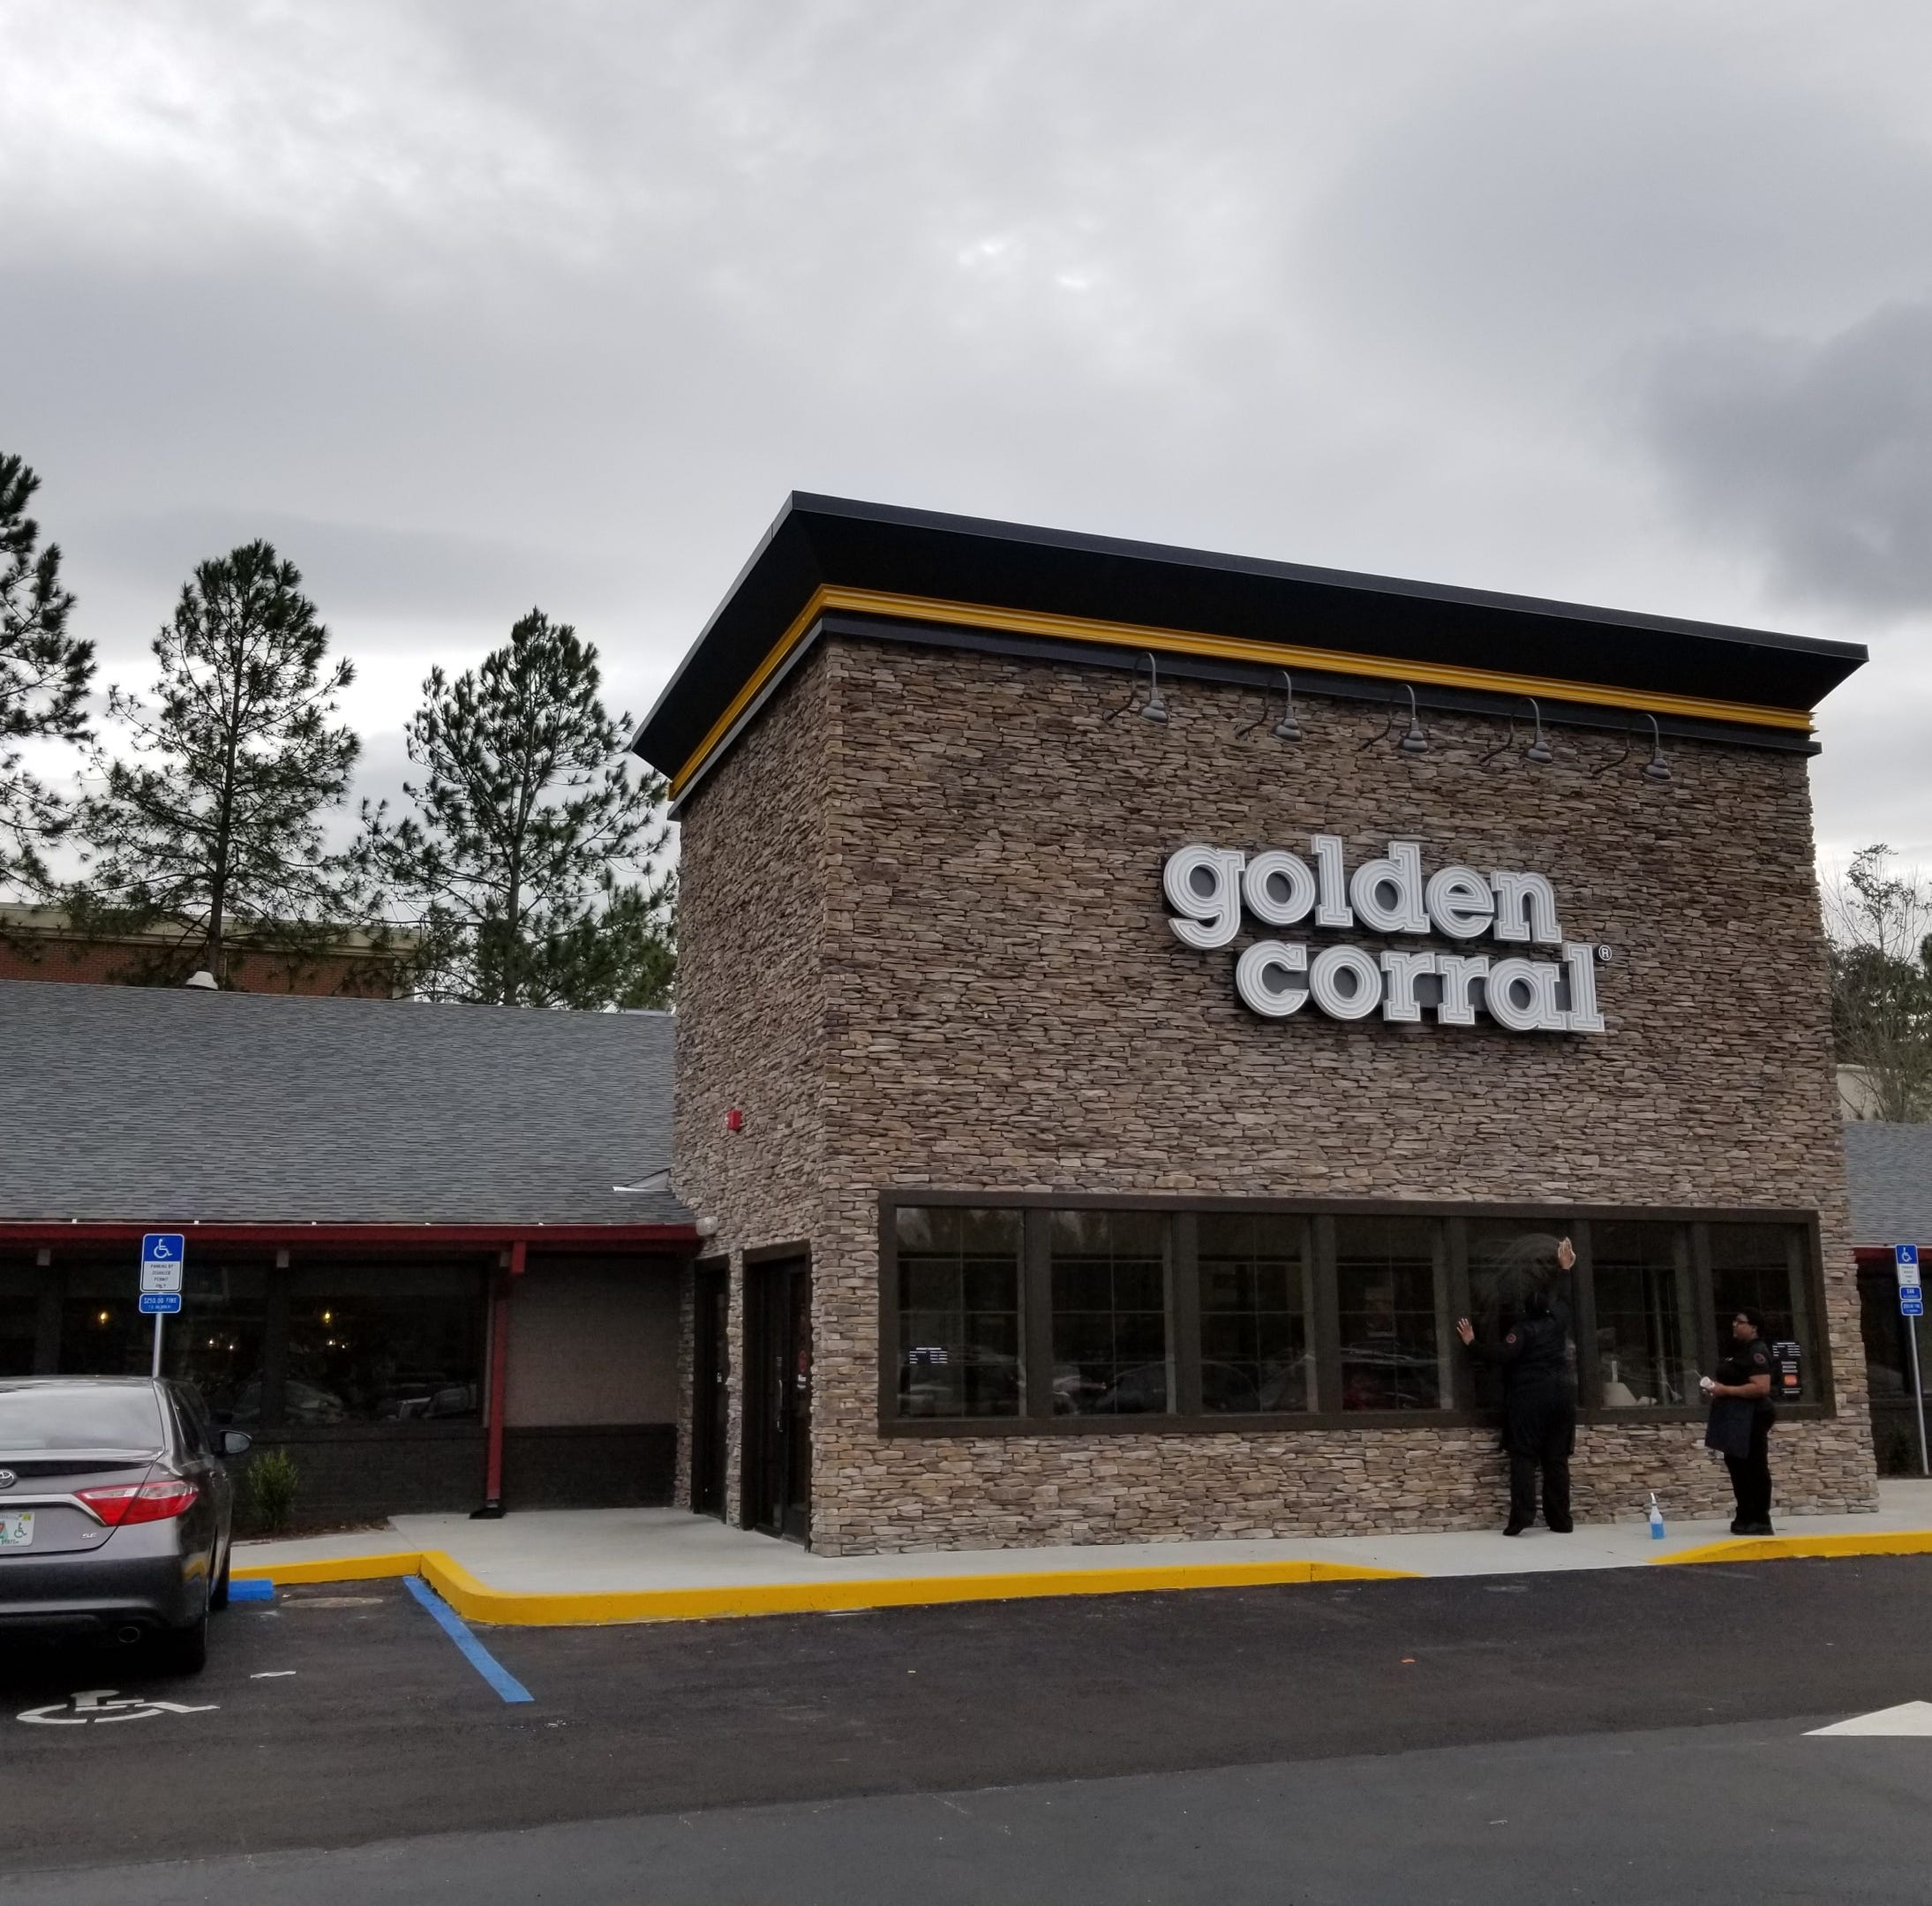 Tallahassee Golden Corral reopens following extensive renovations